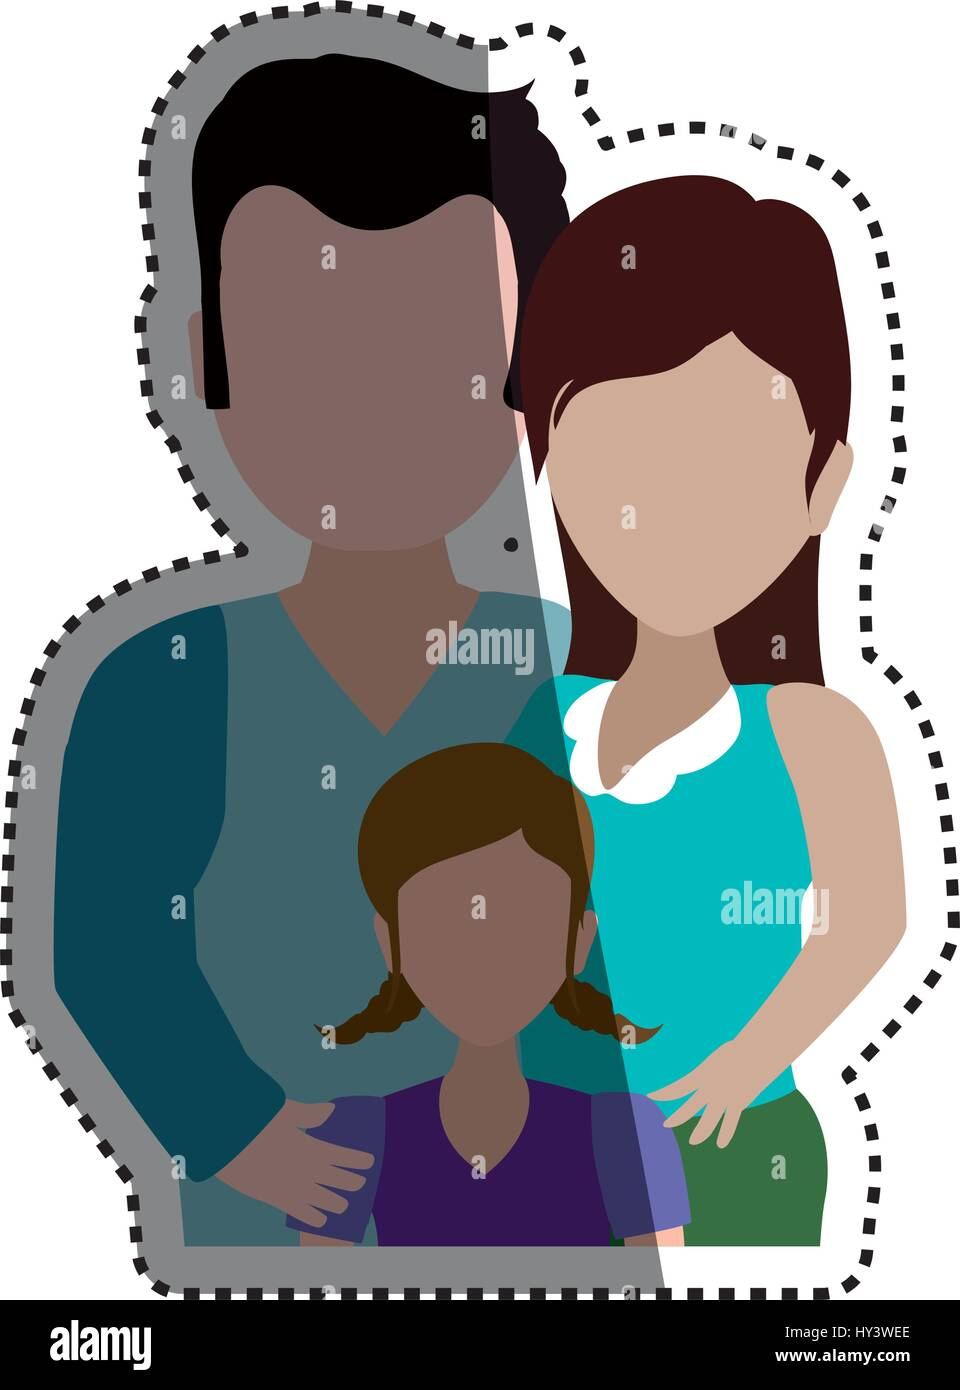 People relationships and family - Stock Image